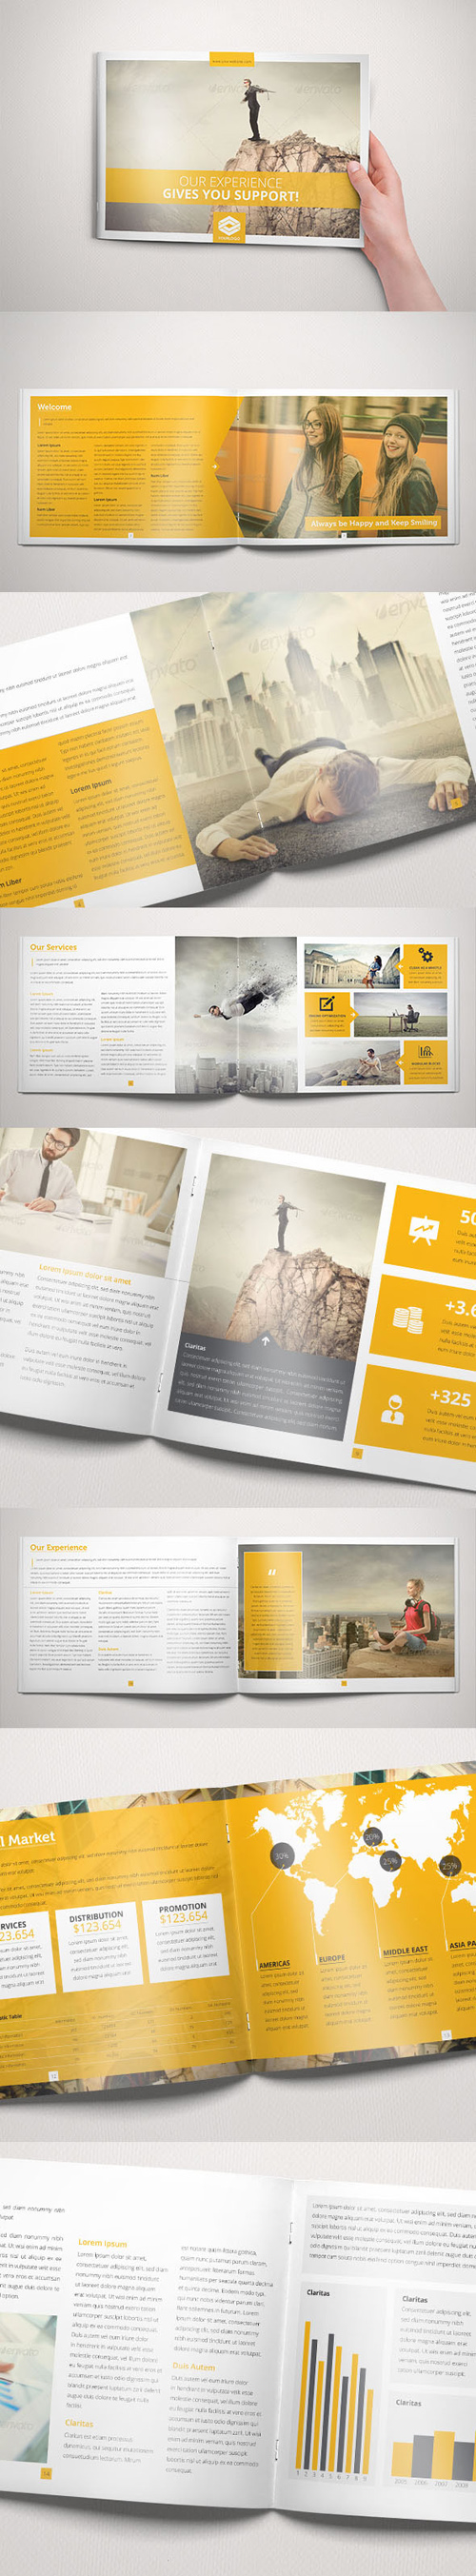 Business Brochure Indesign Template